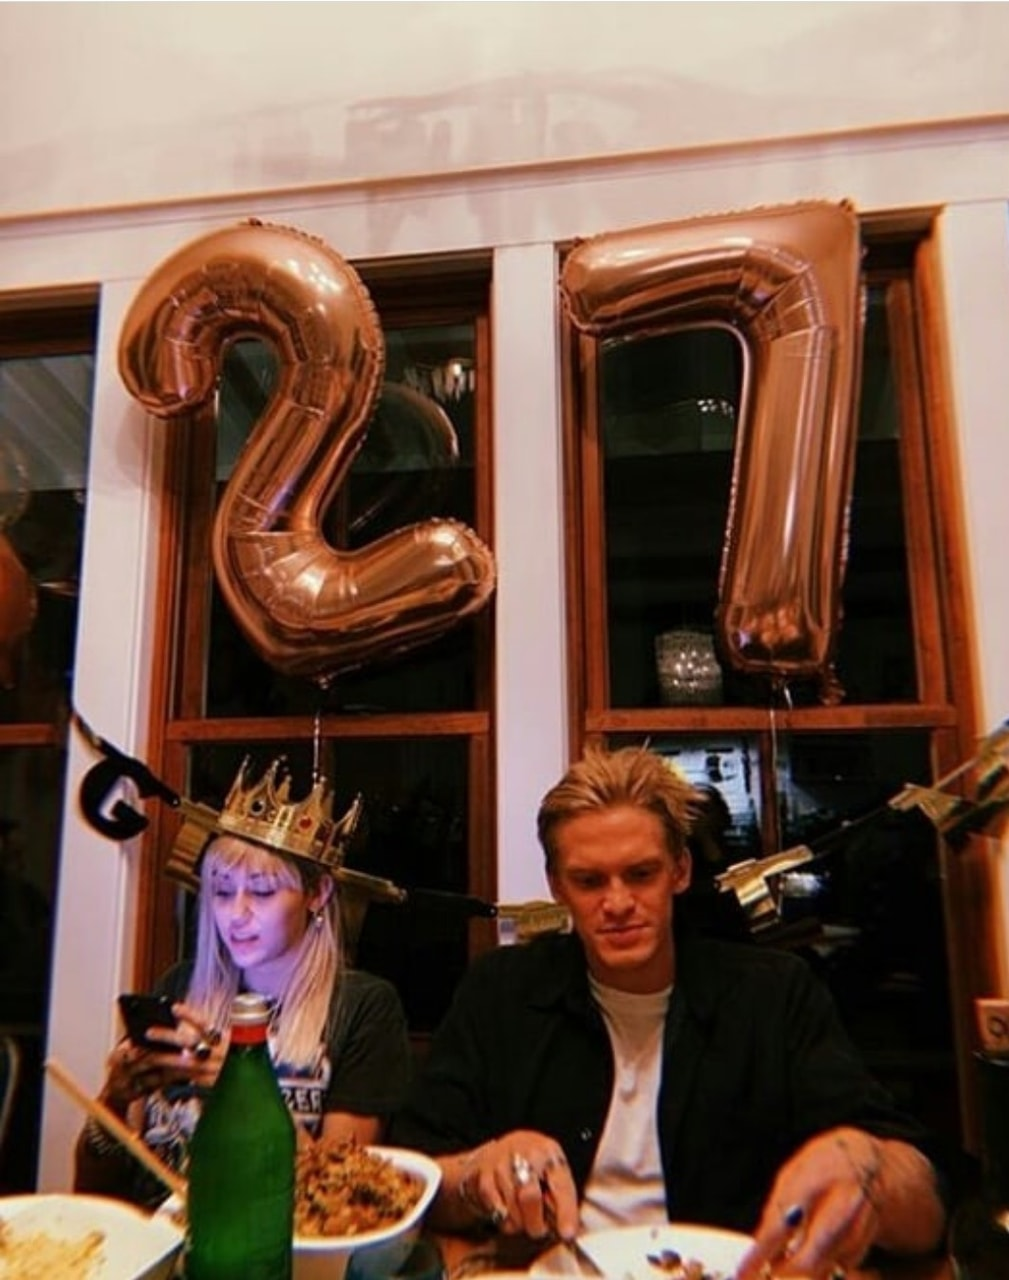 miley cyrus, 27, and cody simpson image